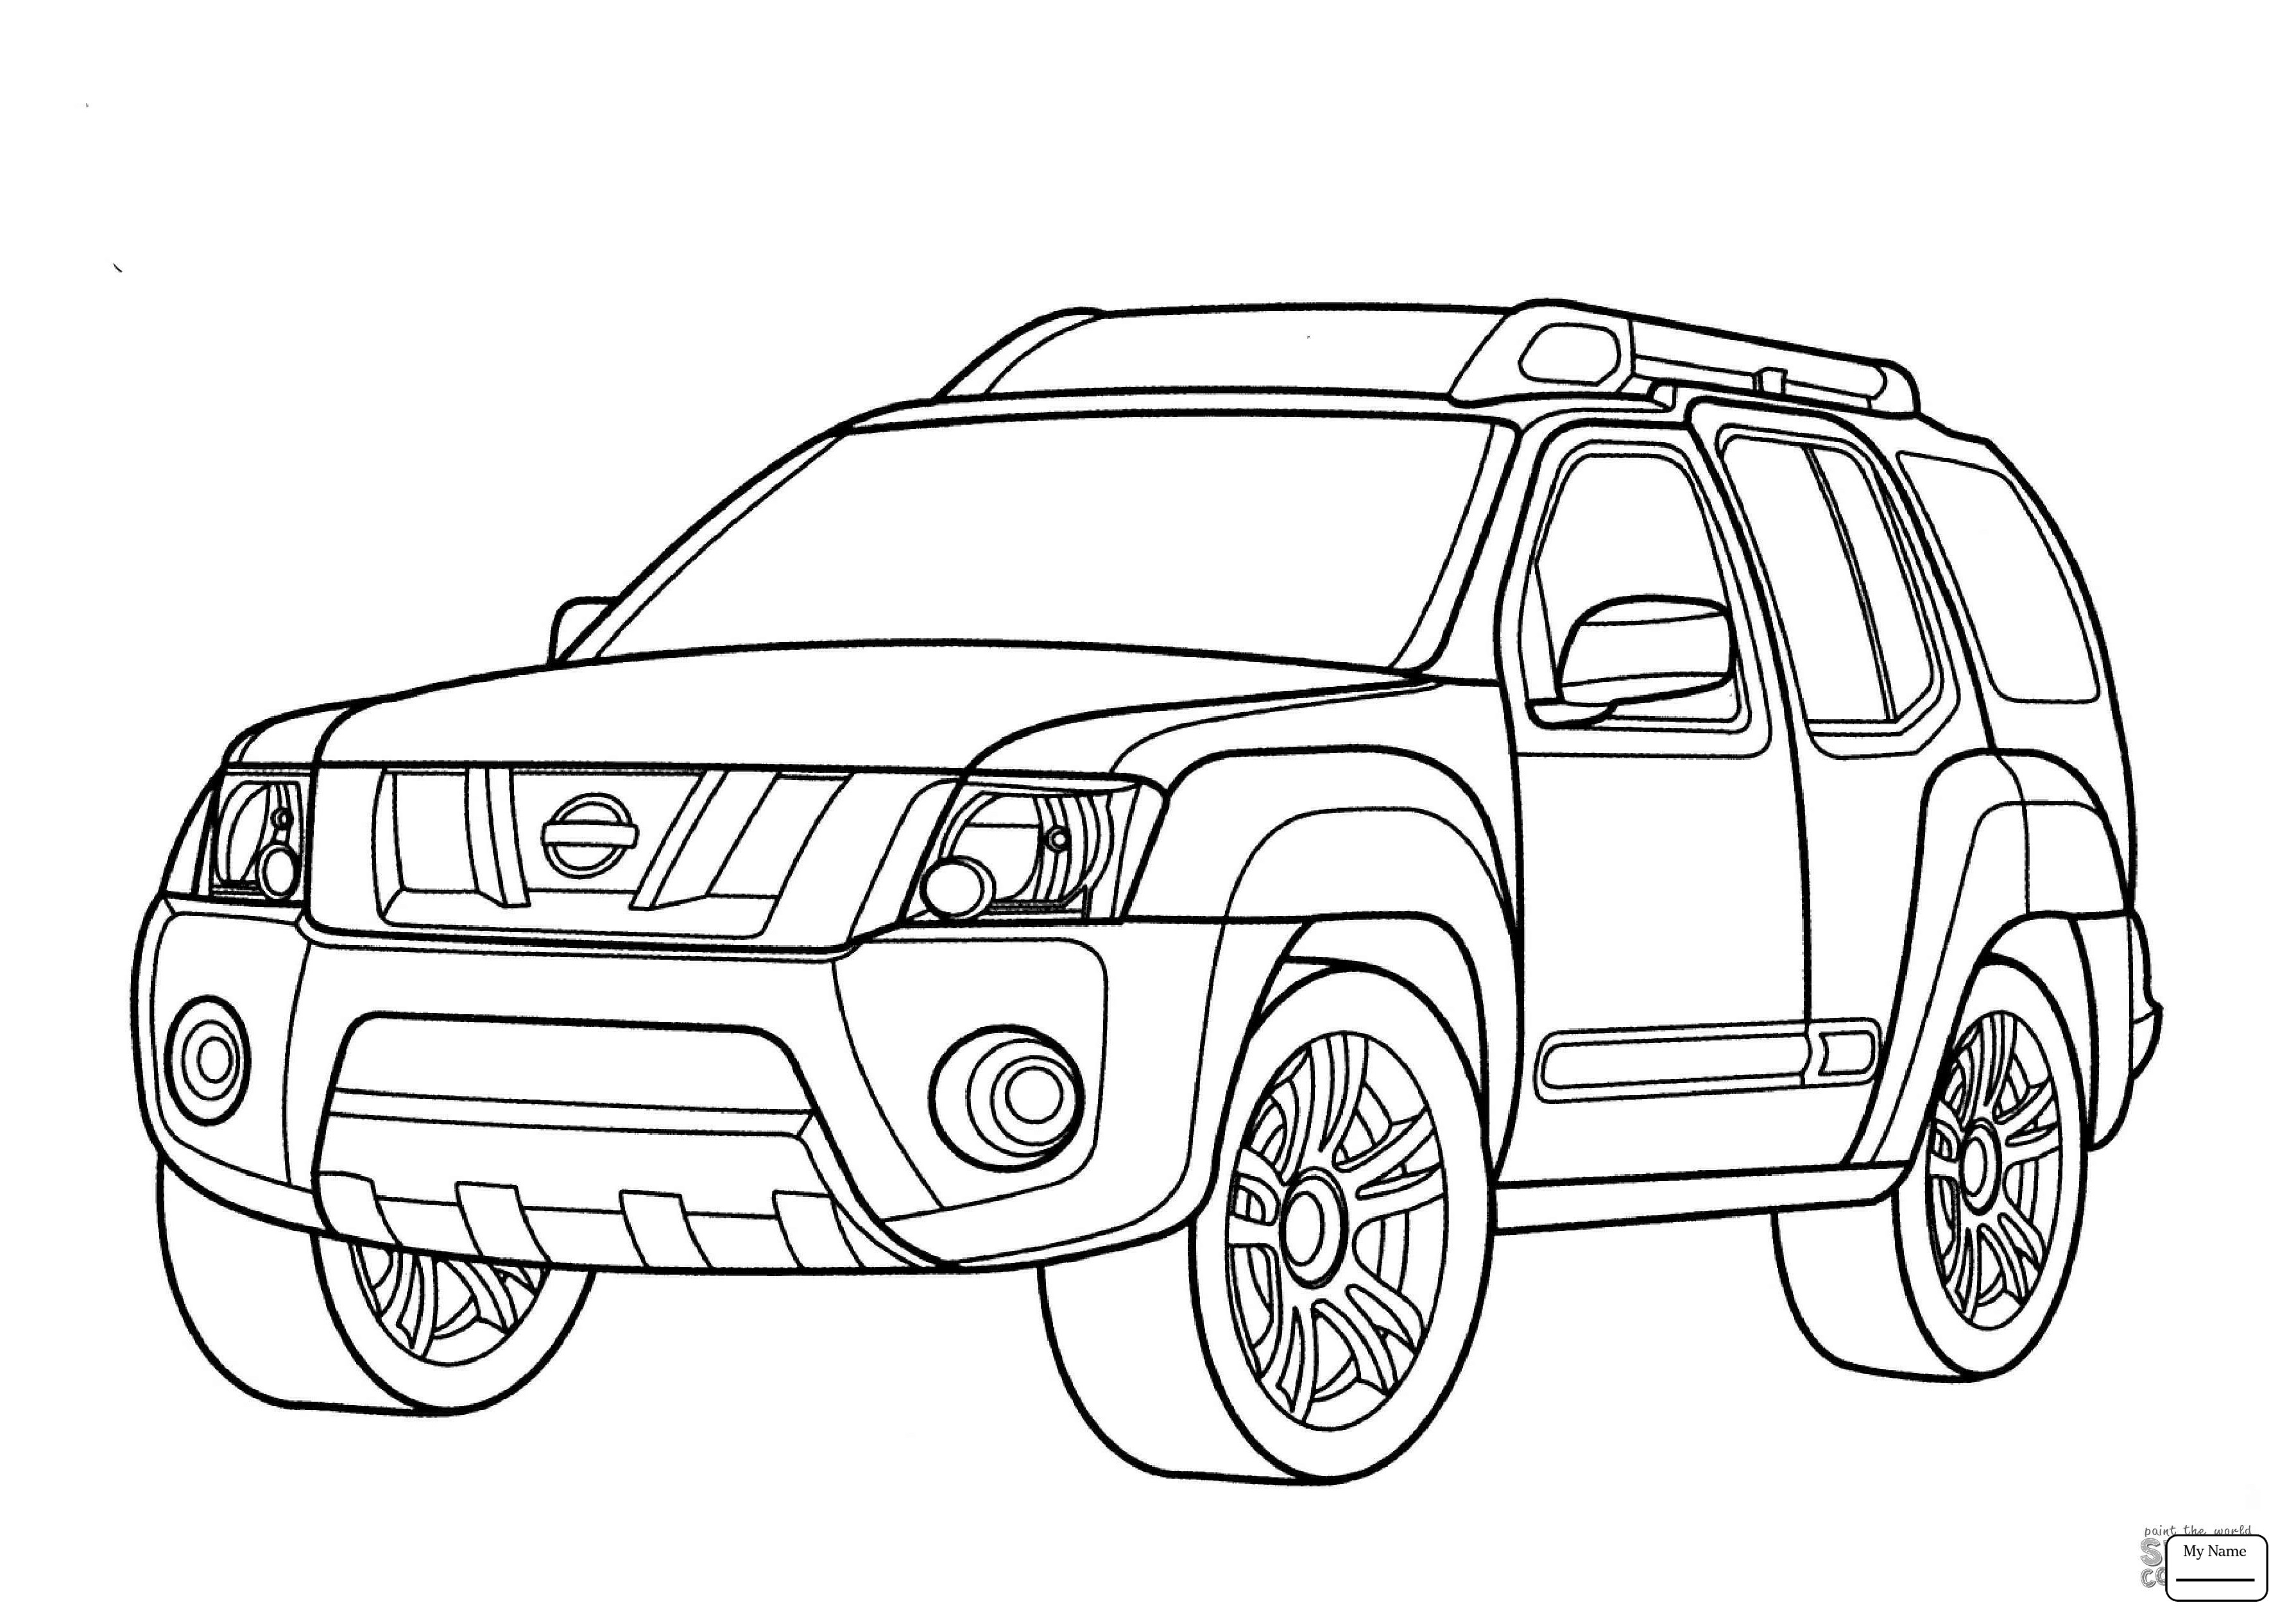 The best free Toyota coloring page images. Download from